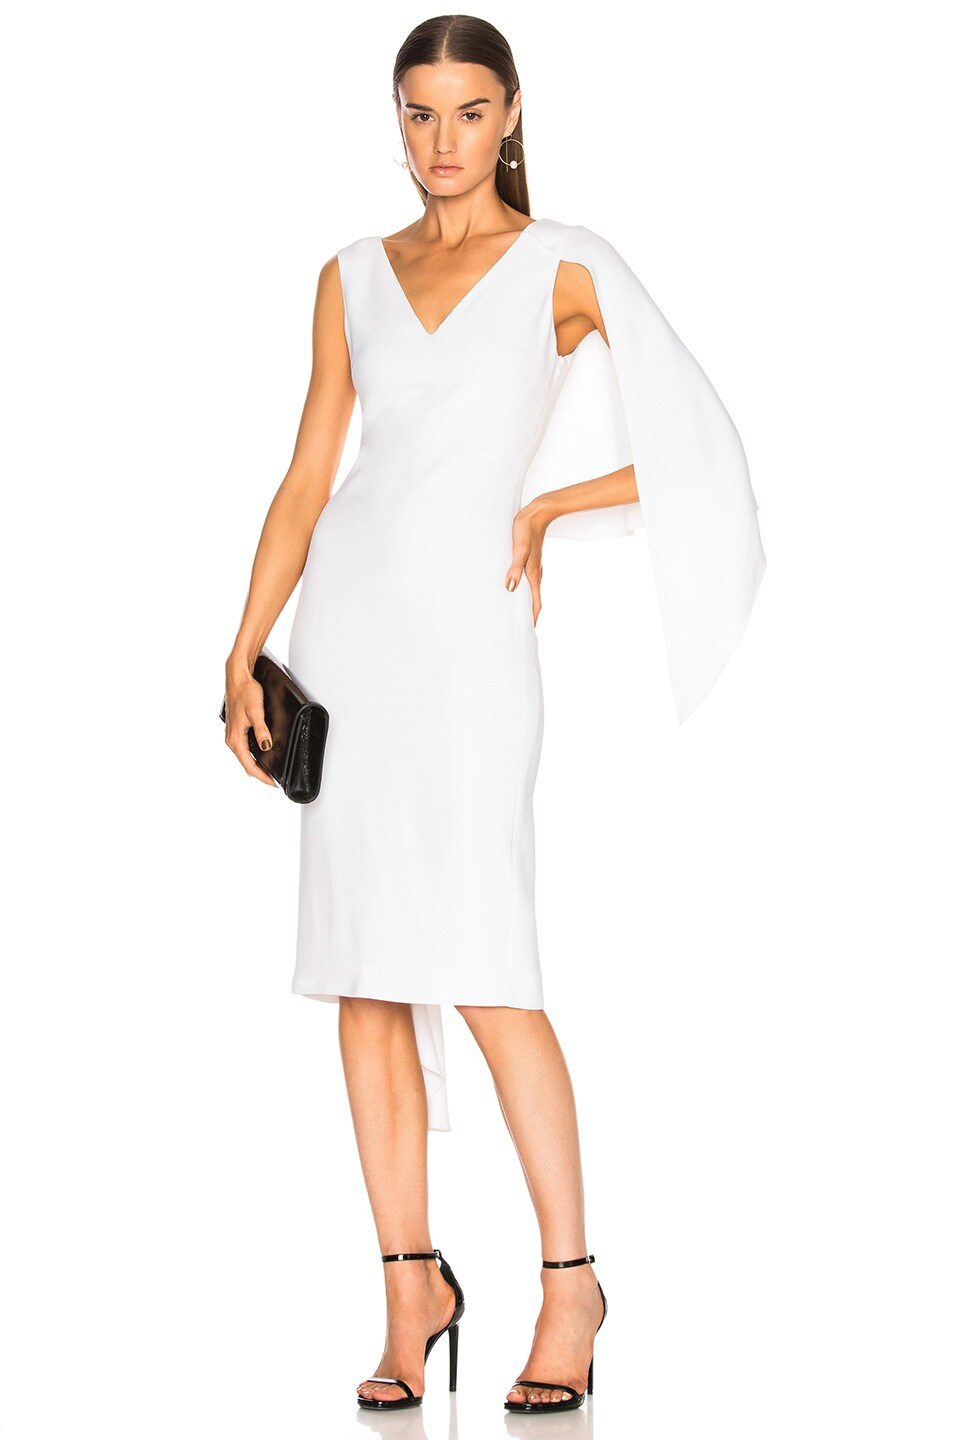 Cushnie et Ochs Leta Dress in White